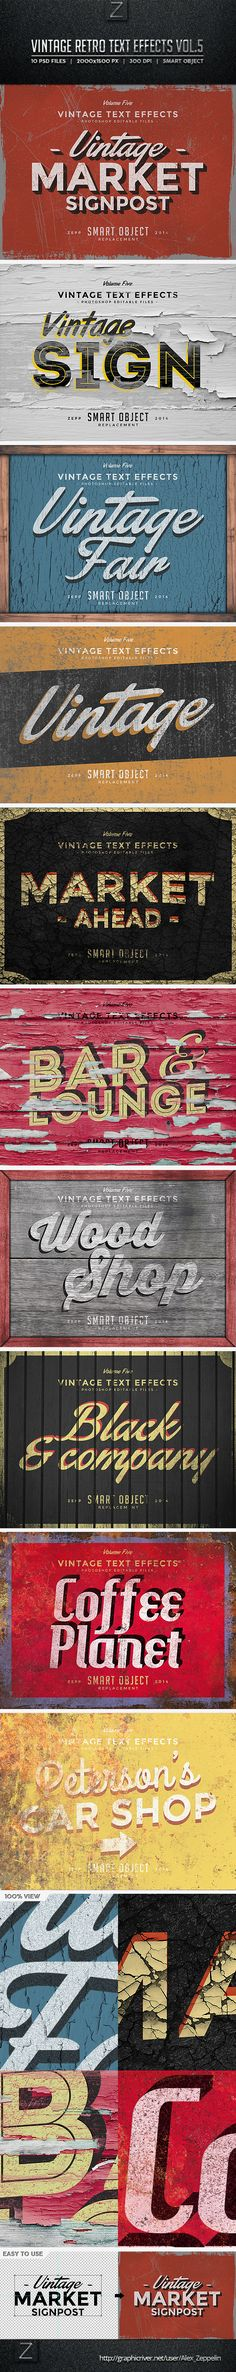 Vintage Text Effects Vol.5 — Layered PSD #mock-up #vintage • Download ➝ https://graphicriver.net/item/vintage-text-effects-vol5/8774175?ref=pxcr